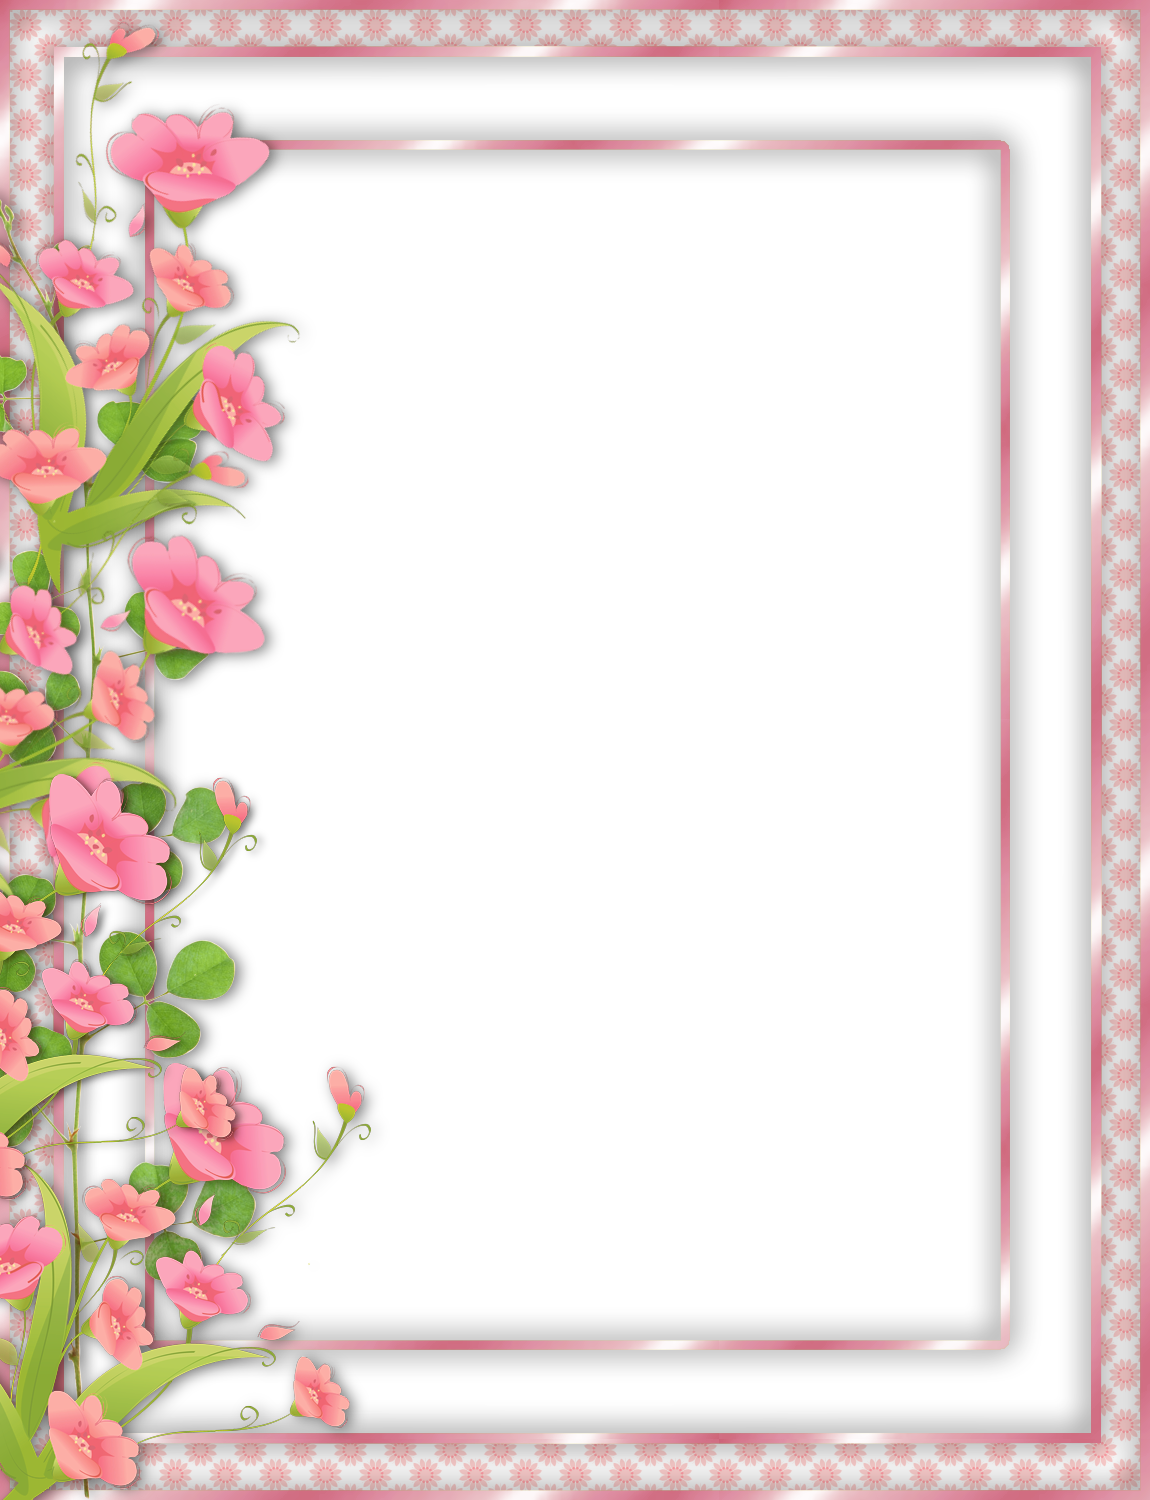 Pink Transparent PNG Frame with Flowers | 2017 | Pinterest ...